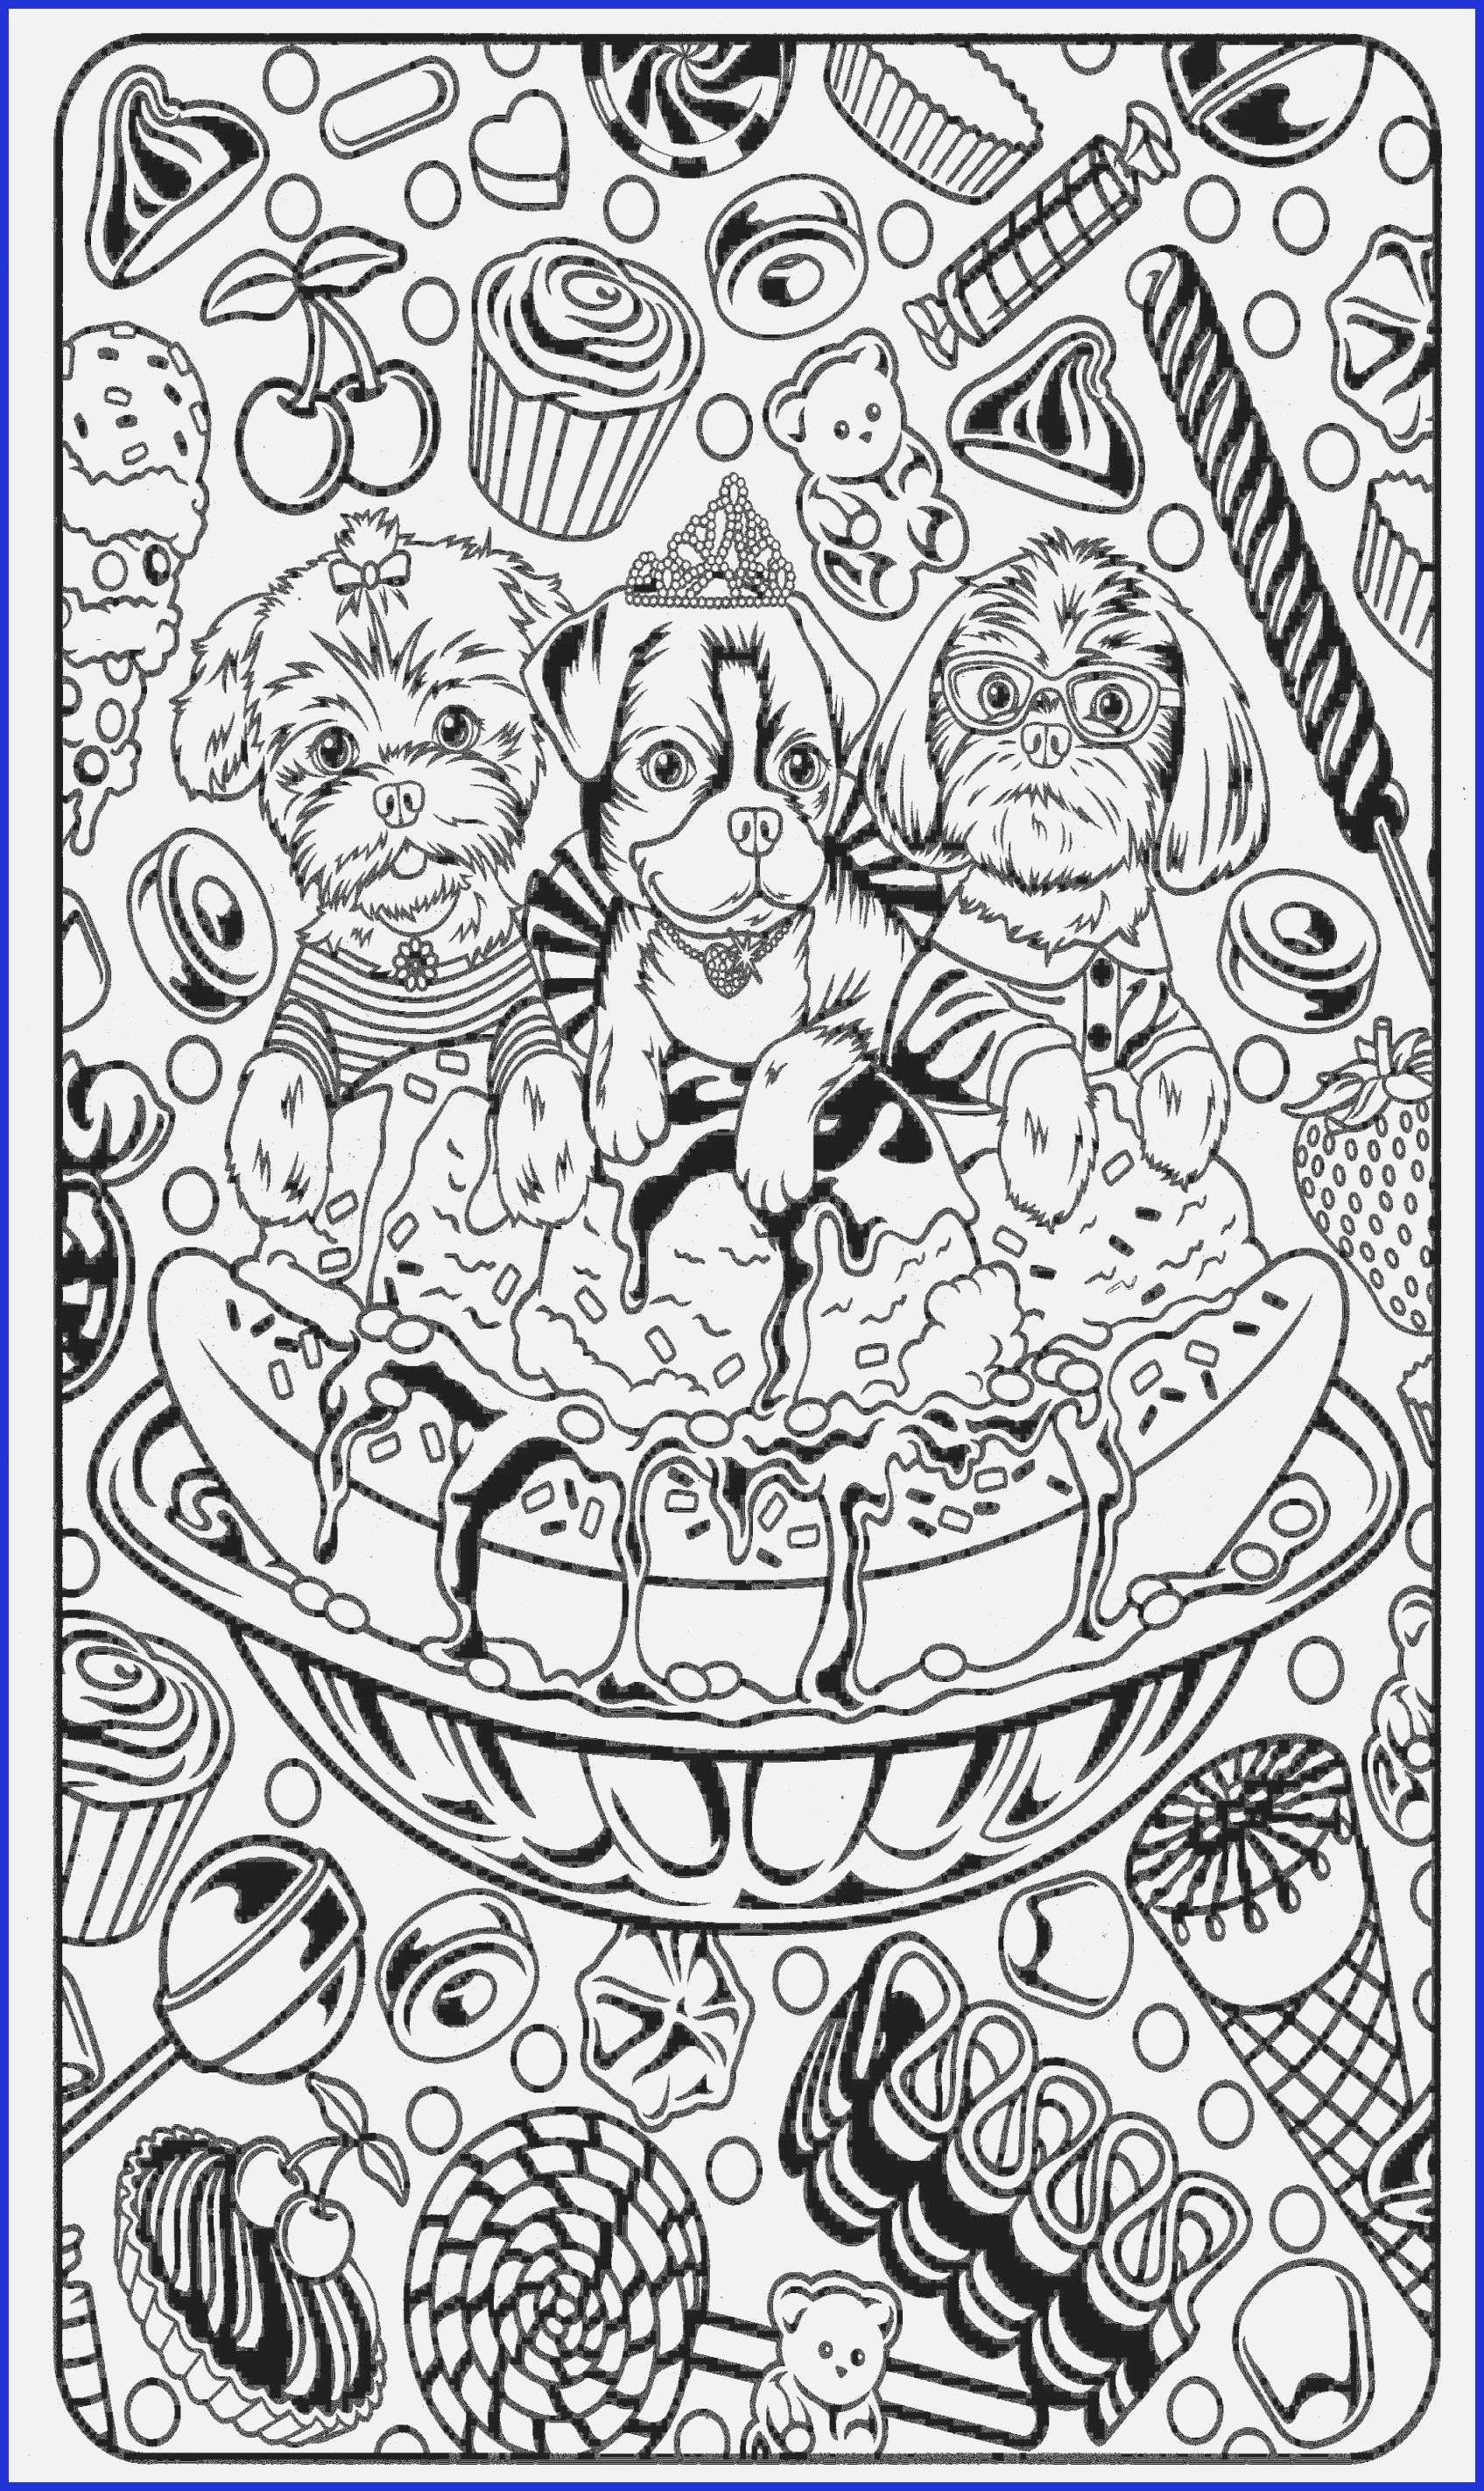 coloring pages bookmarks Collection-Addition Coloring Pages Best 16 Bookmarks to Color 4-r